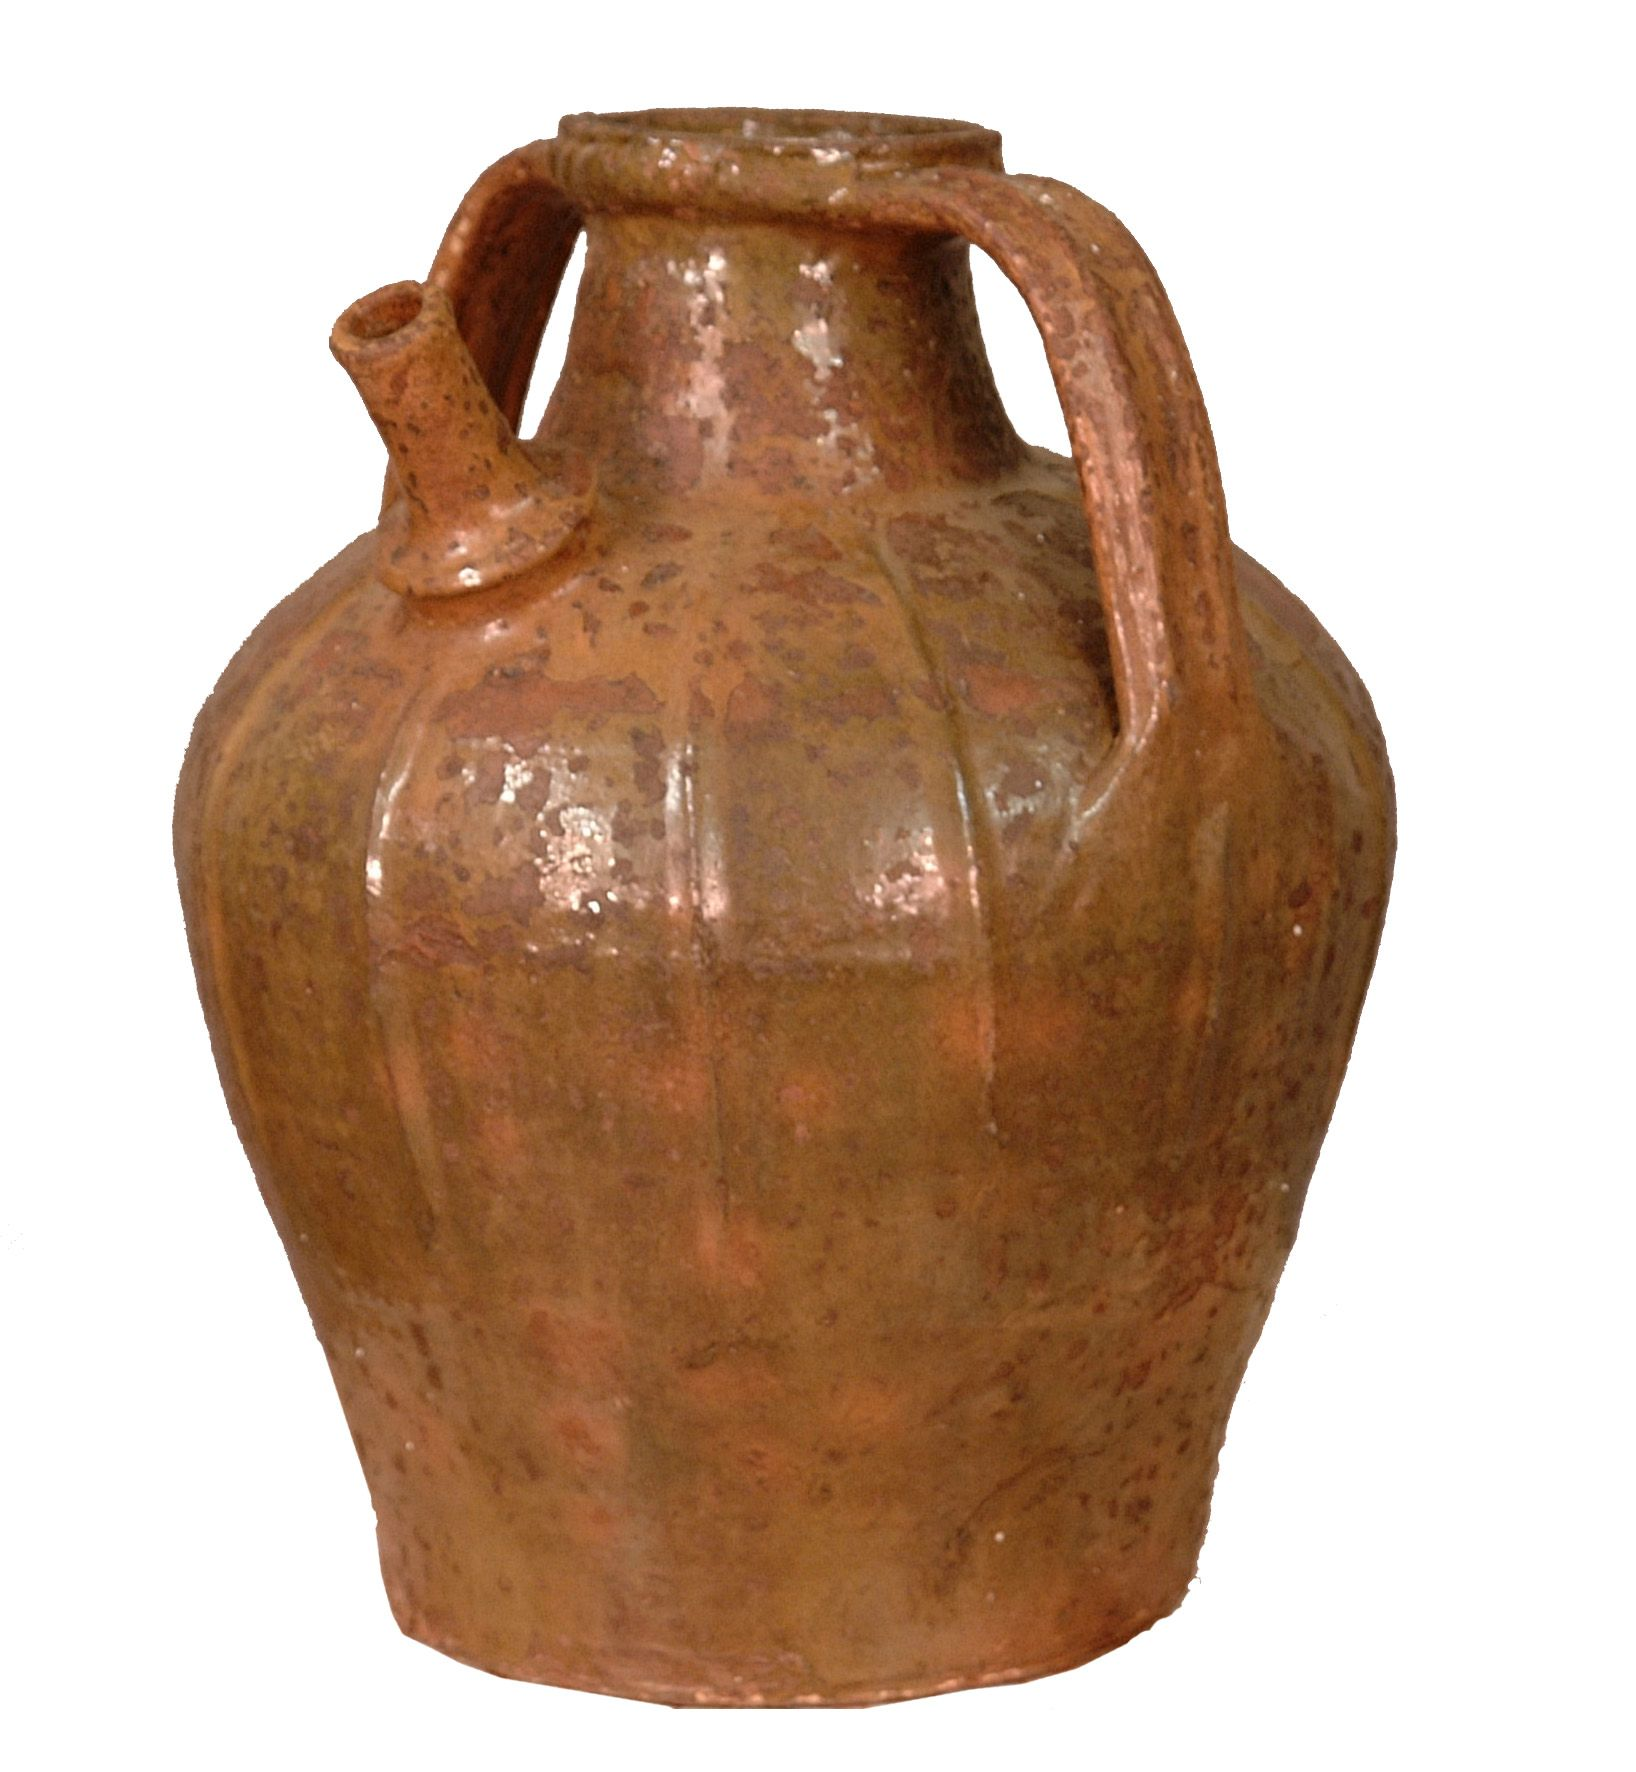 French Pottery Cruche Deau (Water Jug) Auvergne, France Circa